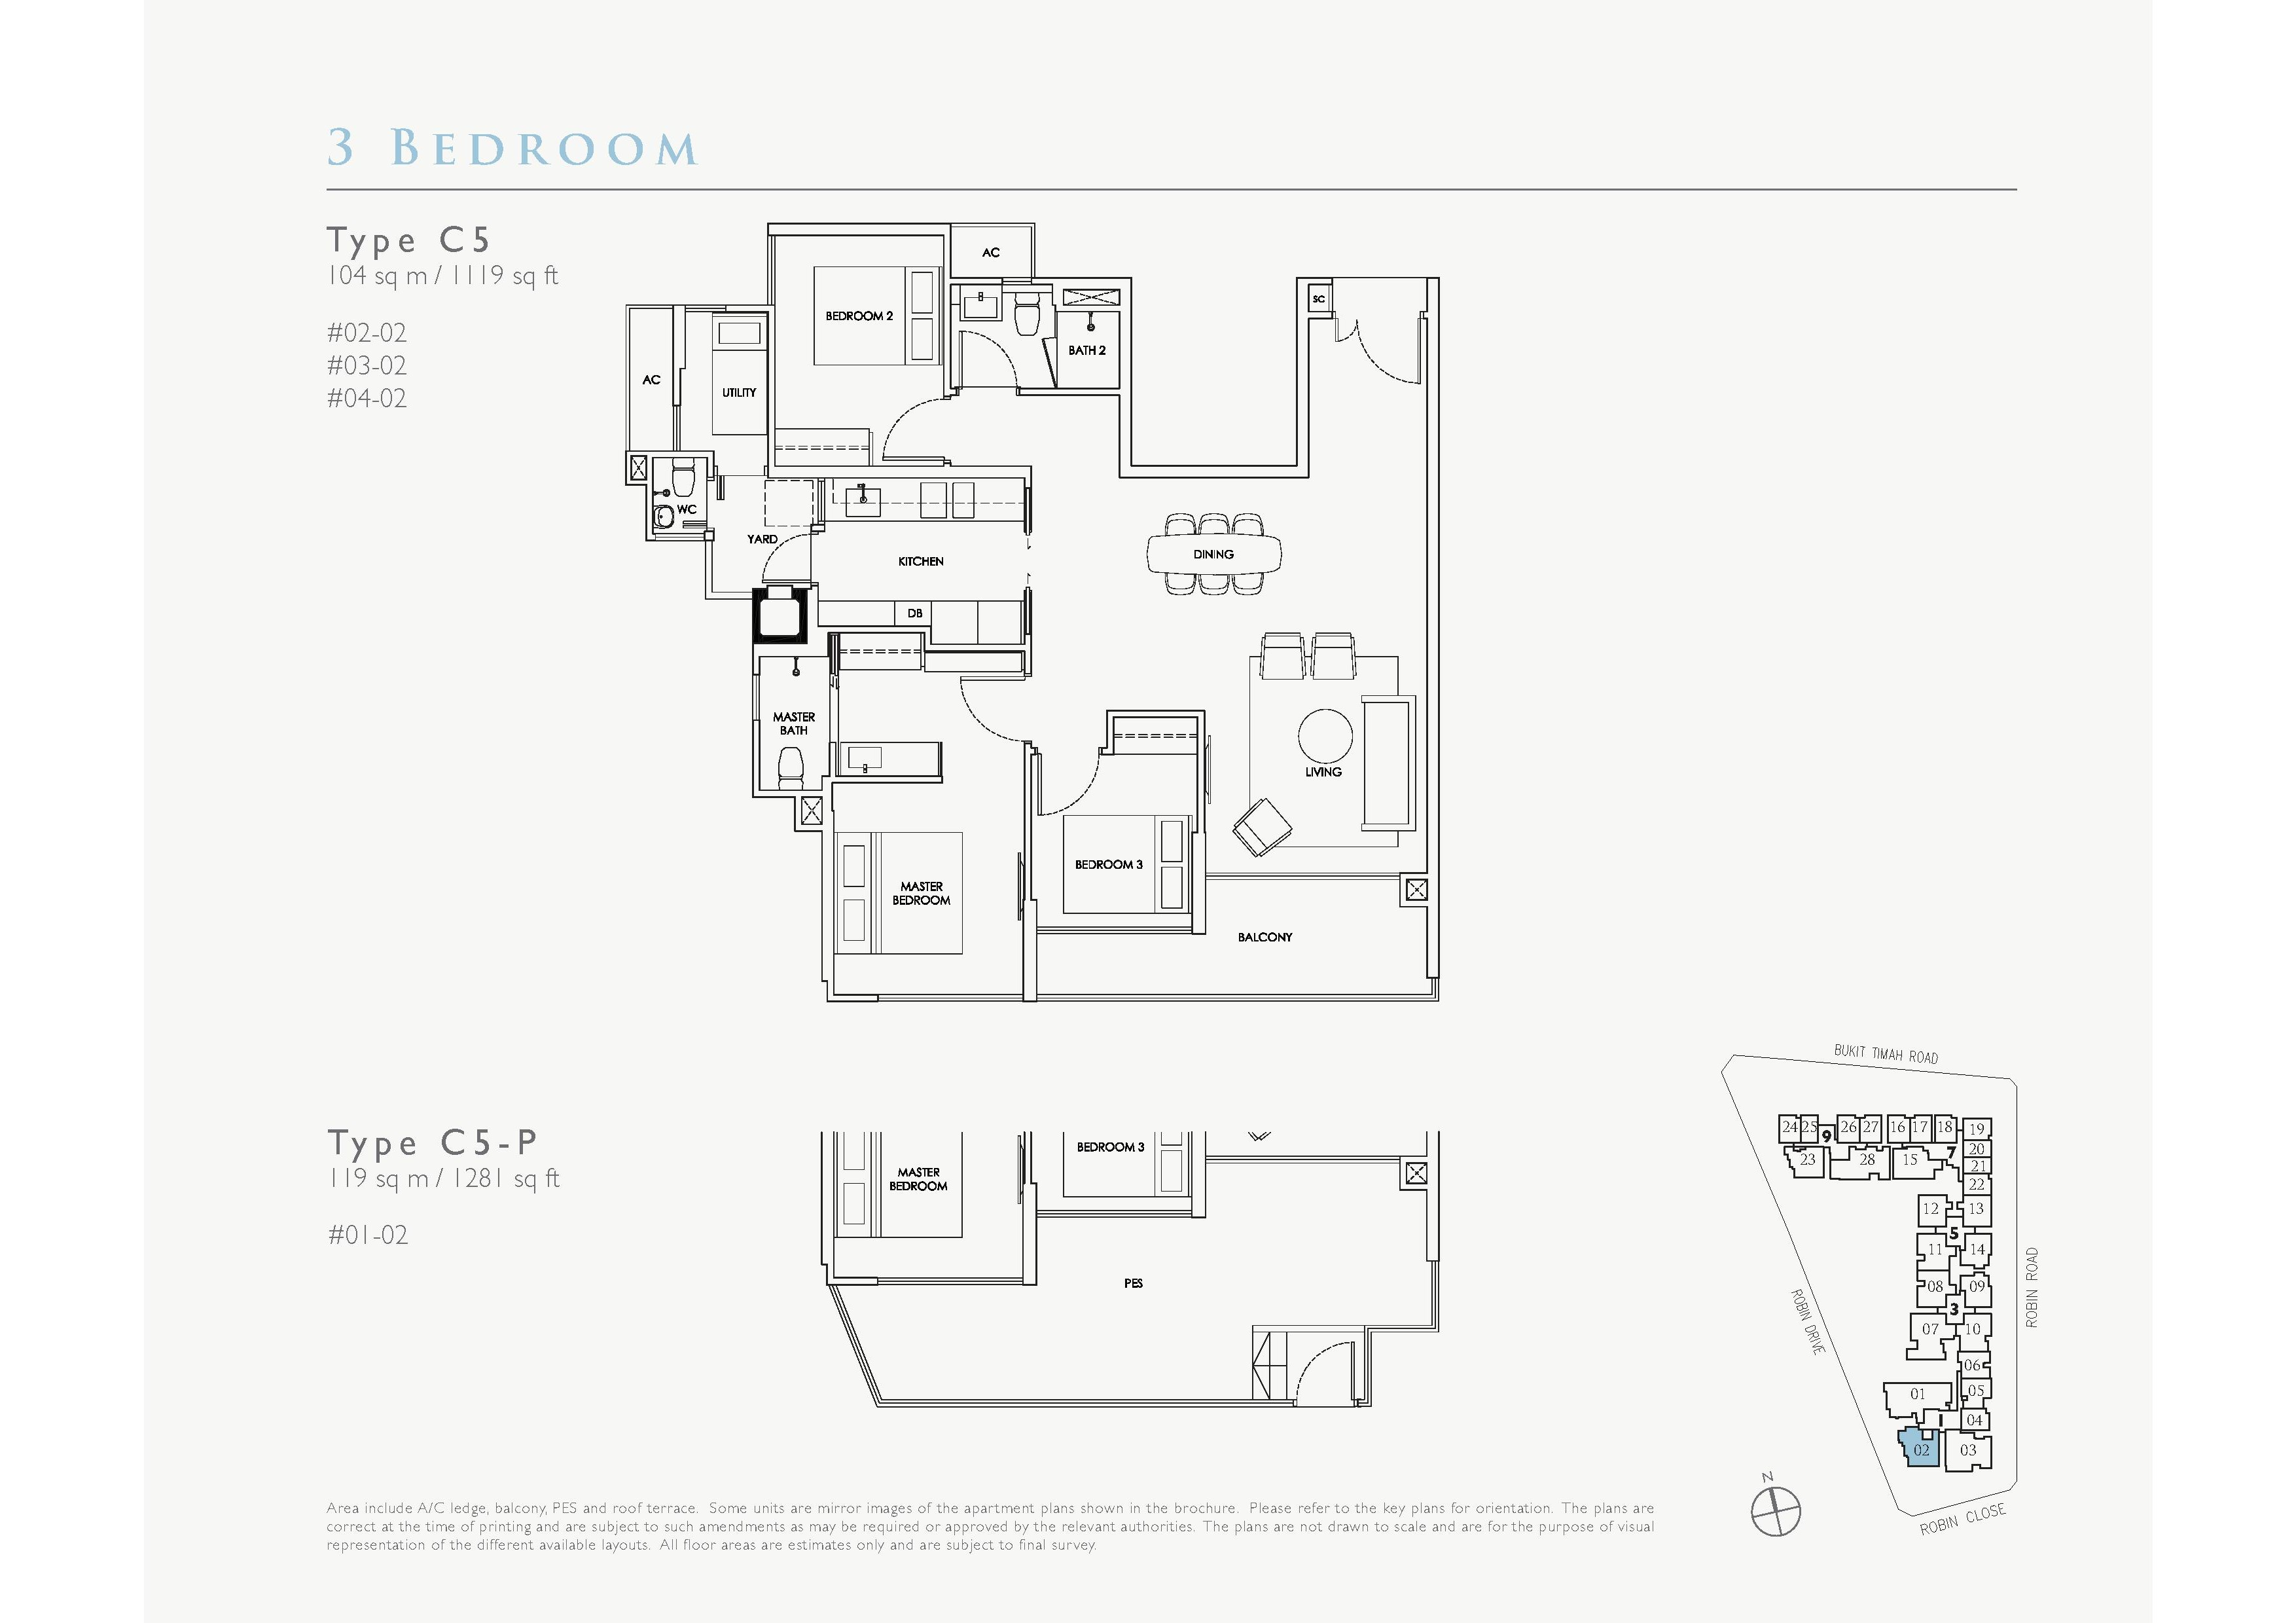 Robin Residences 3 Bedroom Floor Plans Type C5, C5-P